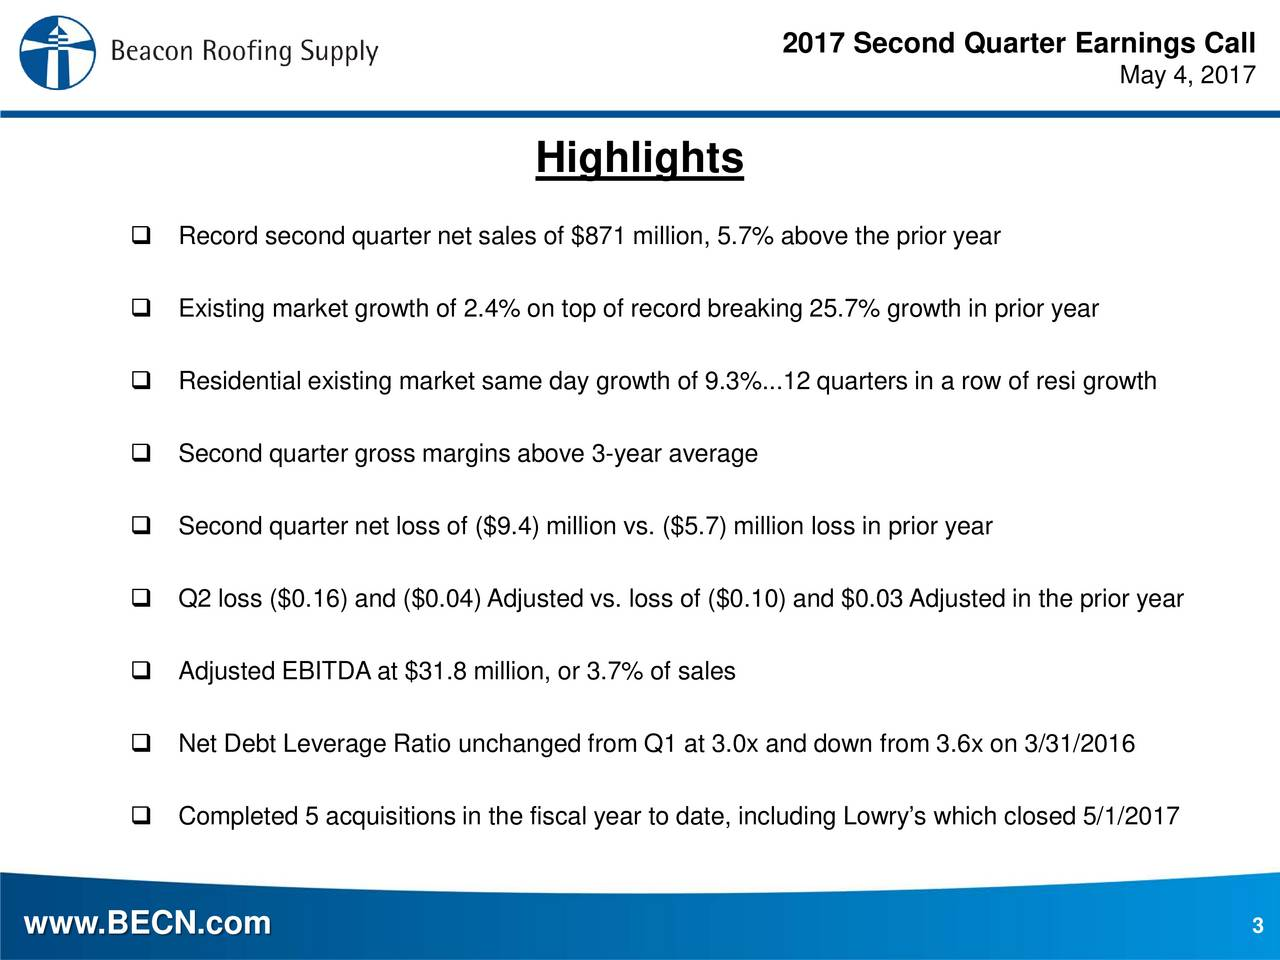 May 4, 2017 Highlights Record second quarter net sales of $871 million, 5.7% above the prior year Existing market growth of 2.4% on top of record breaking 25.7% growth in prior year Residential existing market same day growth of 9.3%...12 quarters in a row of resi growth Second quarter gross margins above 3-year average Second quarter net loss of ($9.4) million vs. ($5.7) million loss in prior year Q2 loss ($0.16) and ($0.04) Adjusted vs. loss of ($0.10) and $0.03 Adjusted in the prior year Adjusted EBITDA at $31.8 million, or 3.7% of sales Net Debt Leverage Ratio unchanged from Q1 at 3.0x and down from 3.6x on 3/31/2016 Completed 5 acquisitions in the fiscal year to date, including Lowrys which closed 5/1/2017 www.BECN.com 3